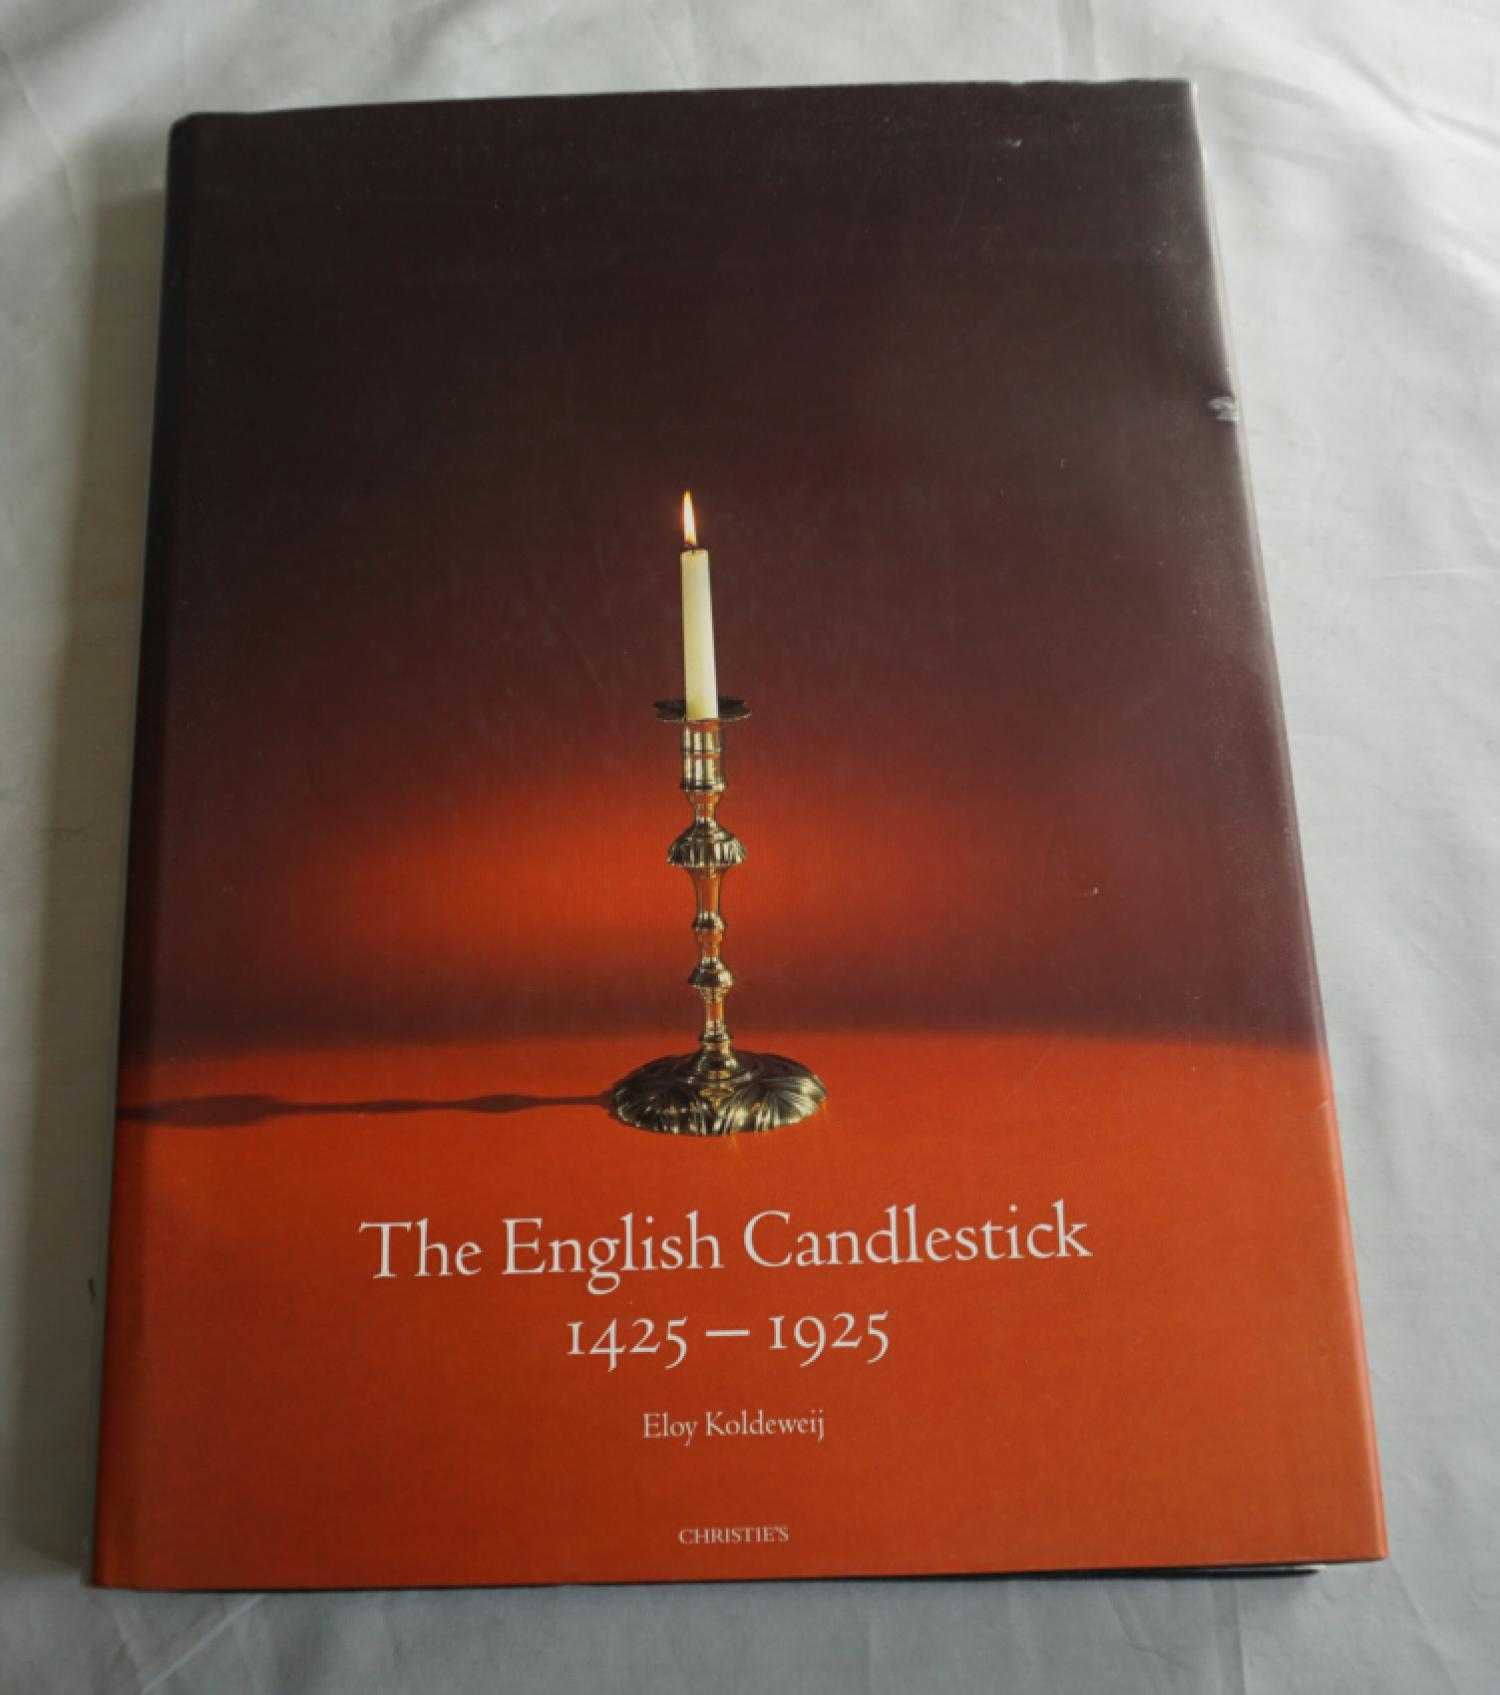 The English Candlestick 1425-1925 Eloy Koldewij 2001